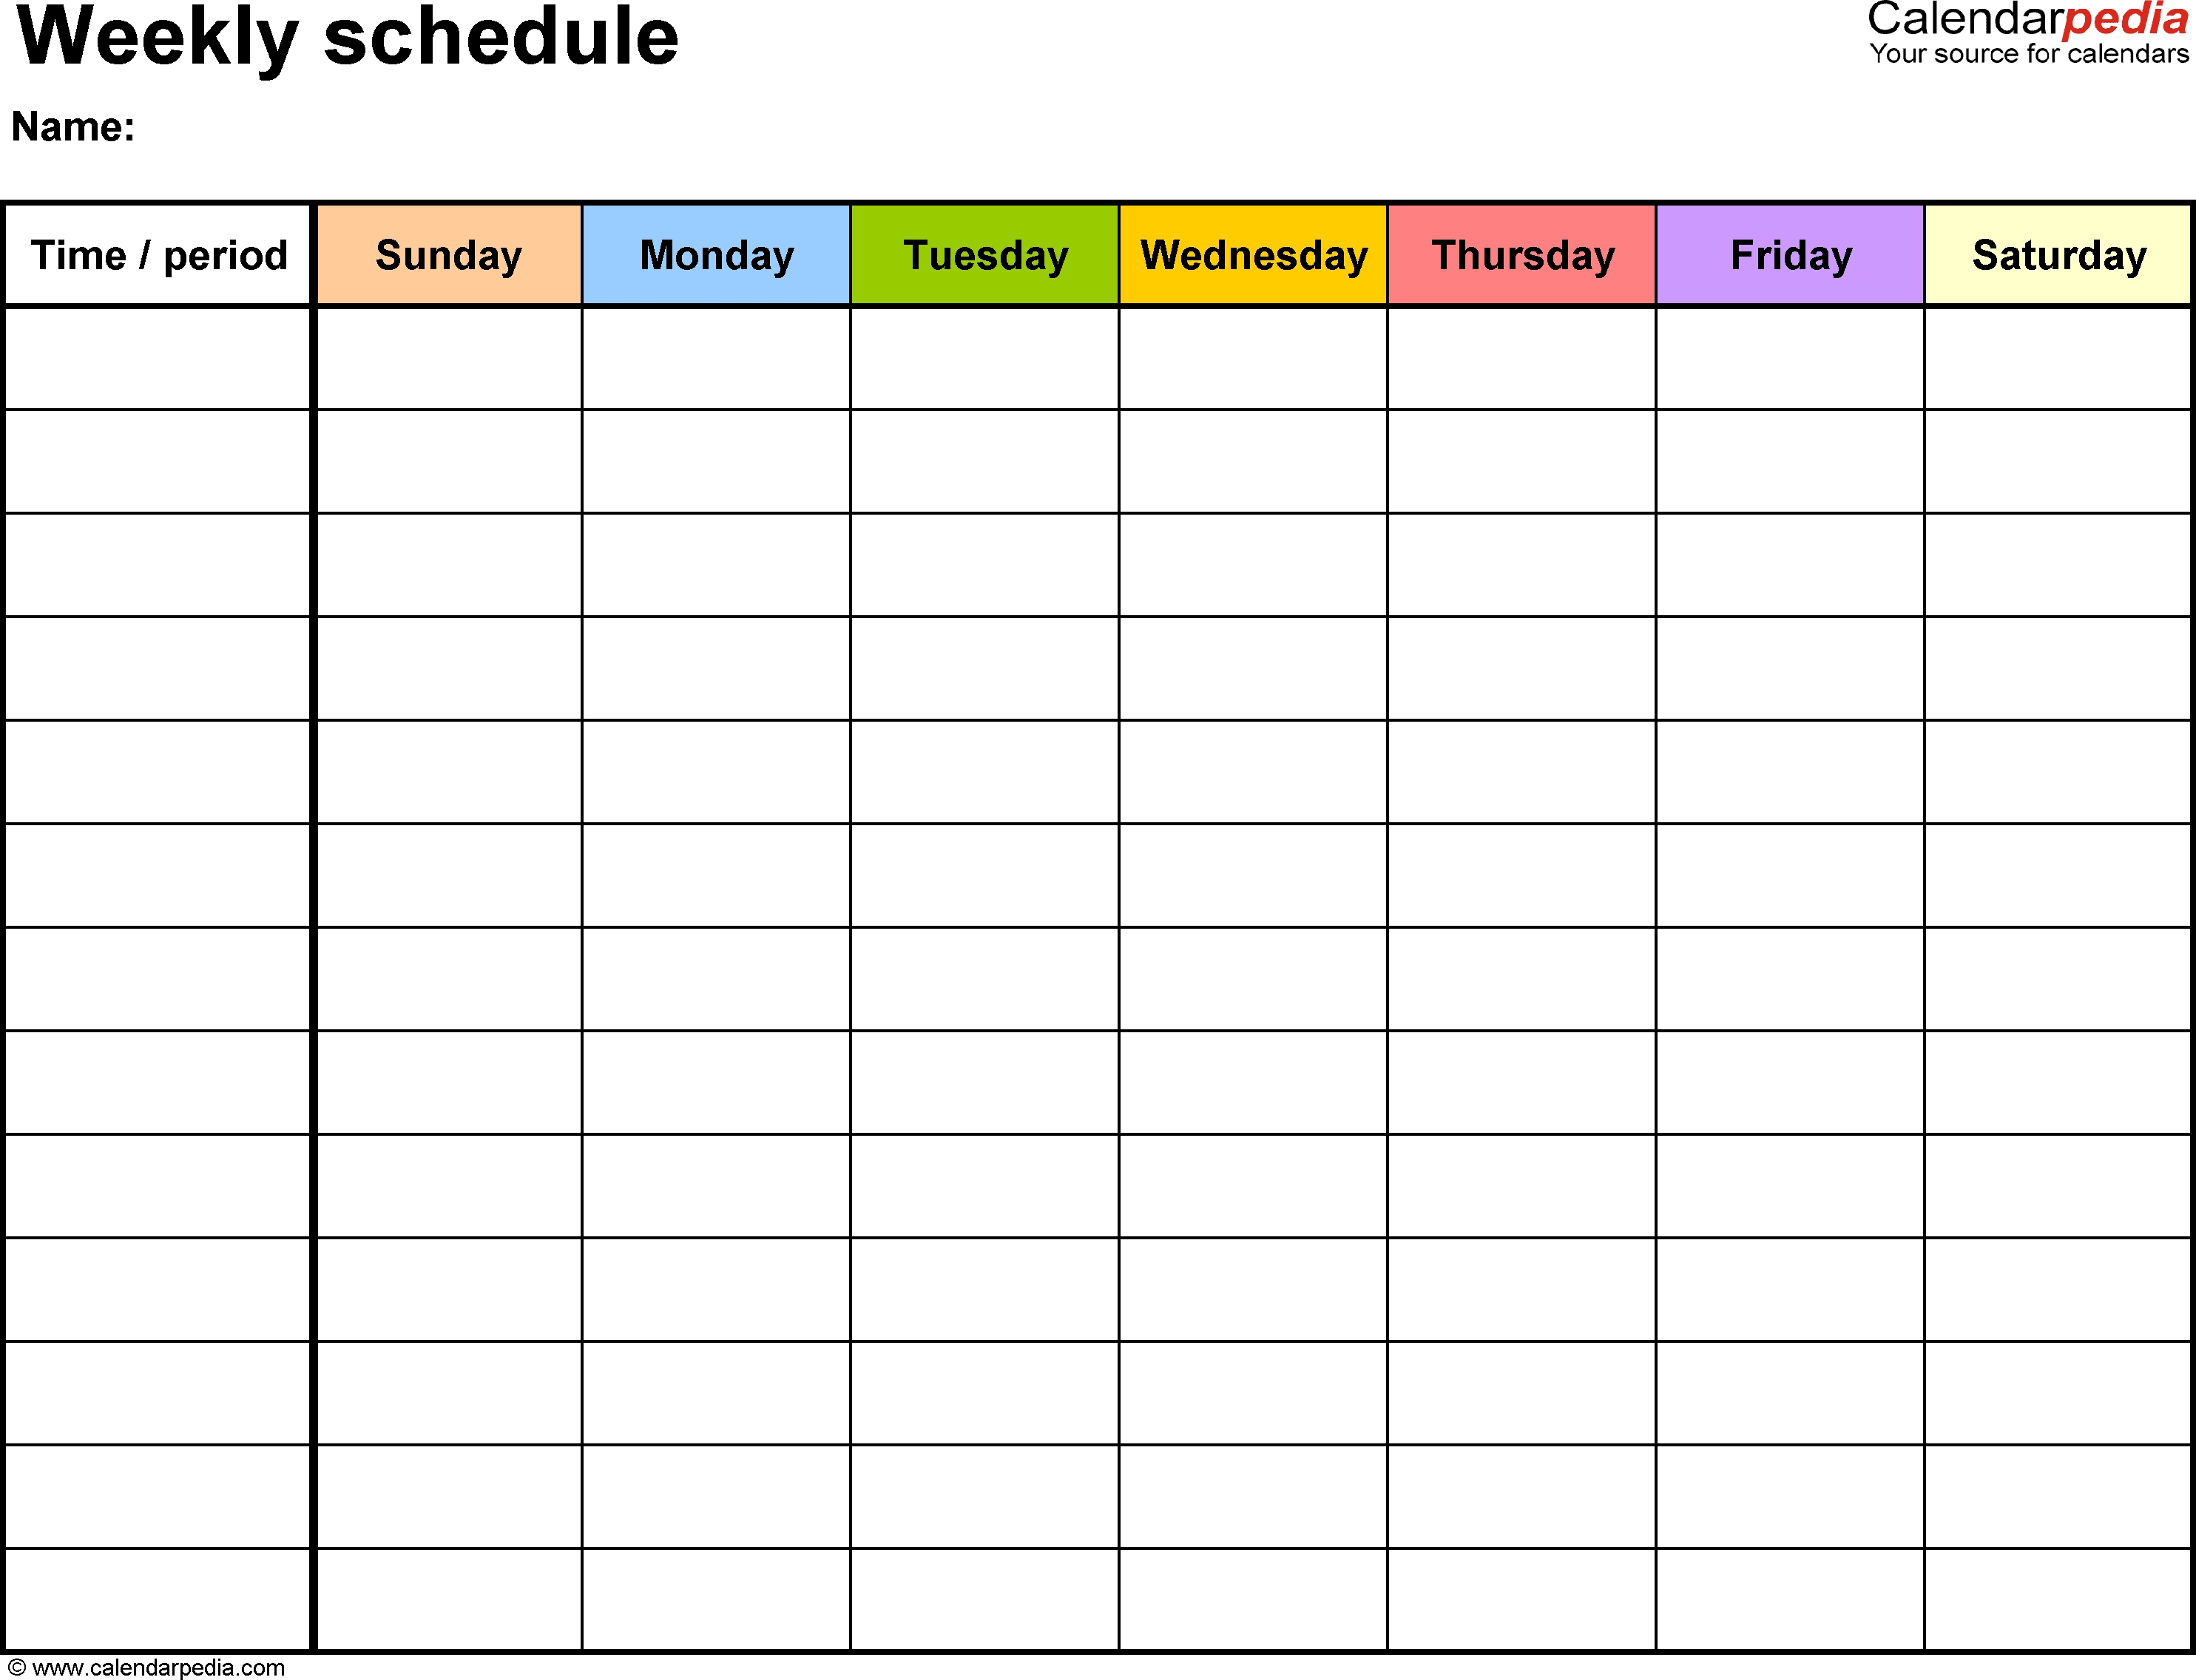 Free Weekly Schedule Templates For Excel - 18 Templates-Monthly Calendar Checklist Excel Template